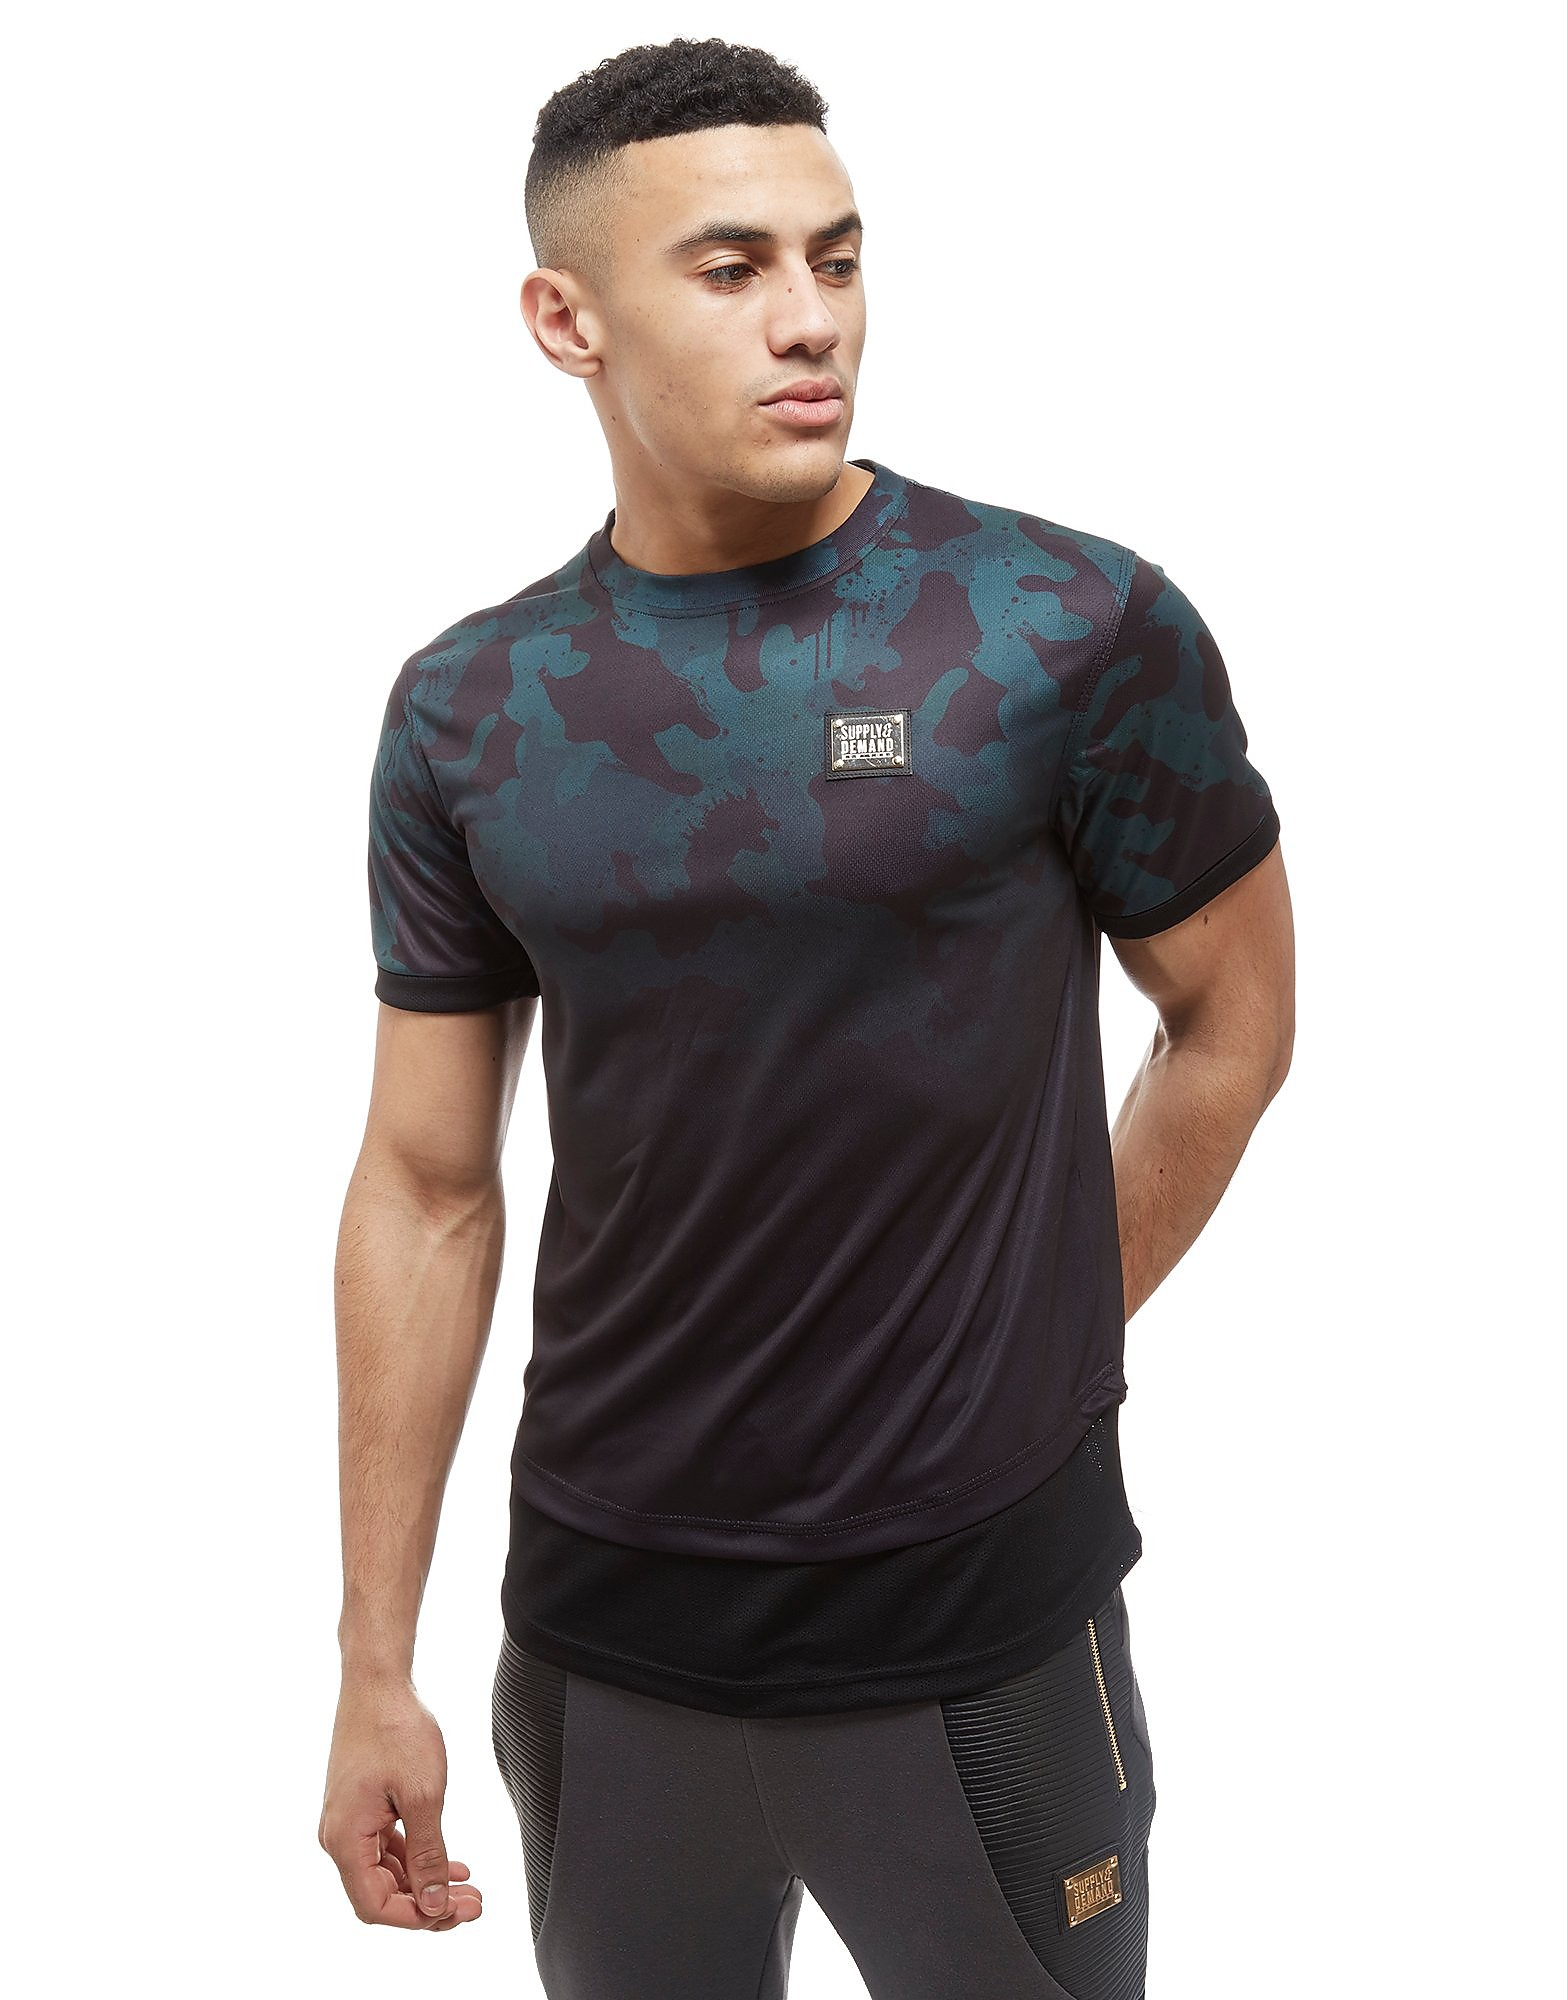 Supply & Demand Teal Fade Camo T-Shirt